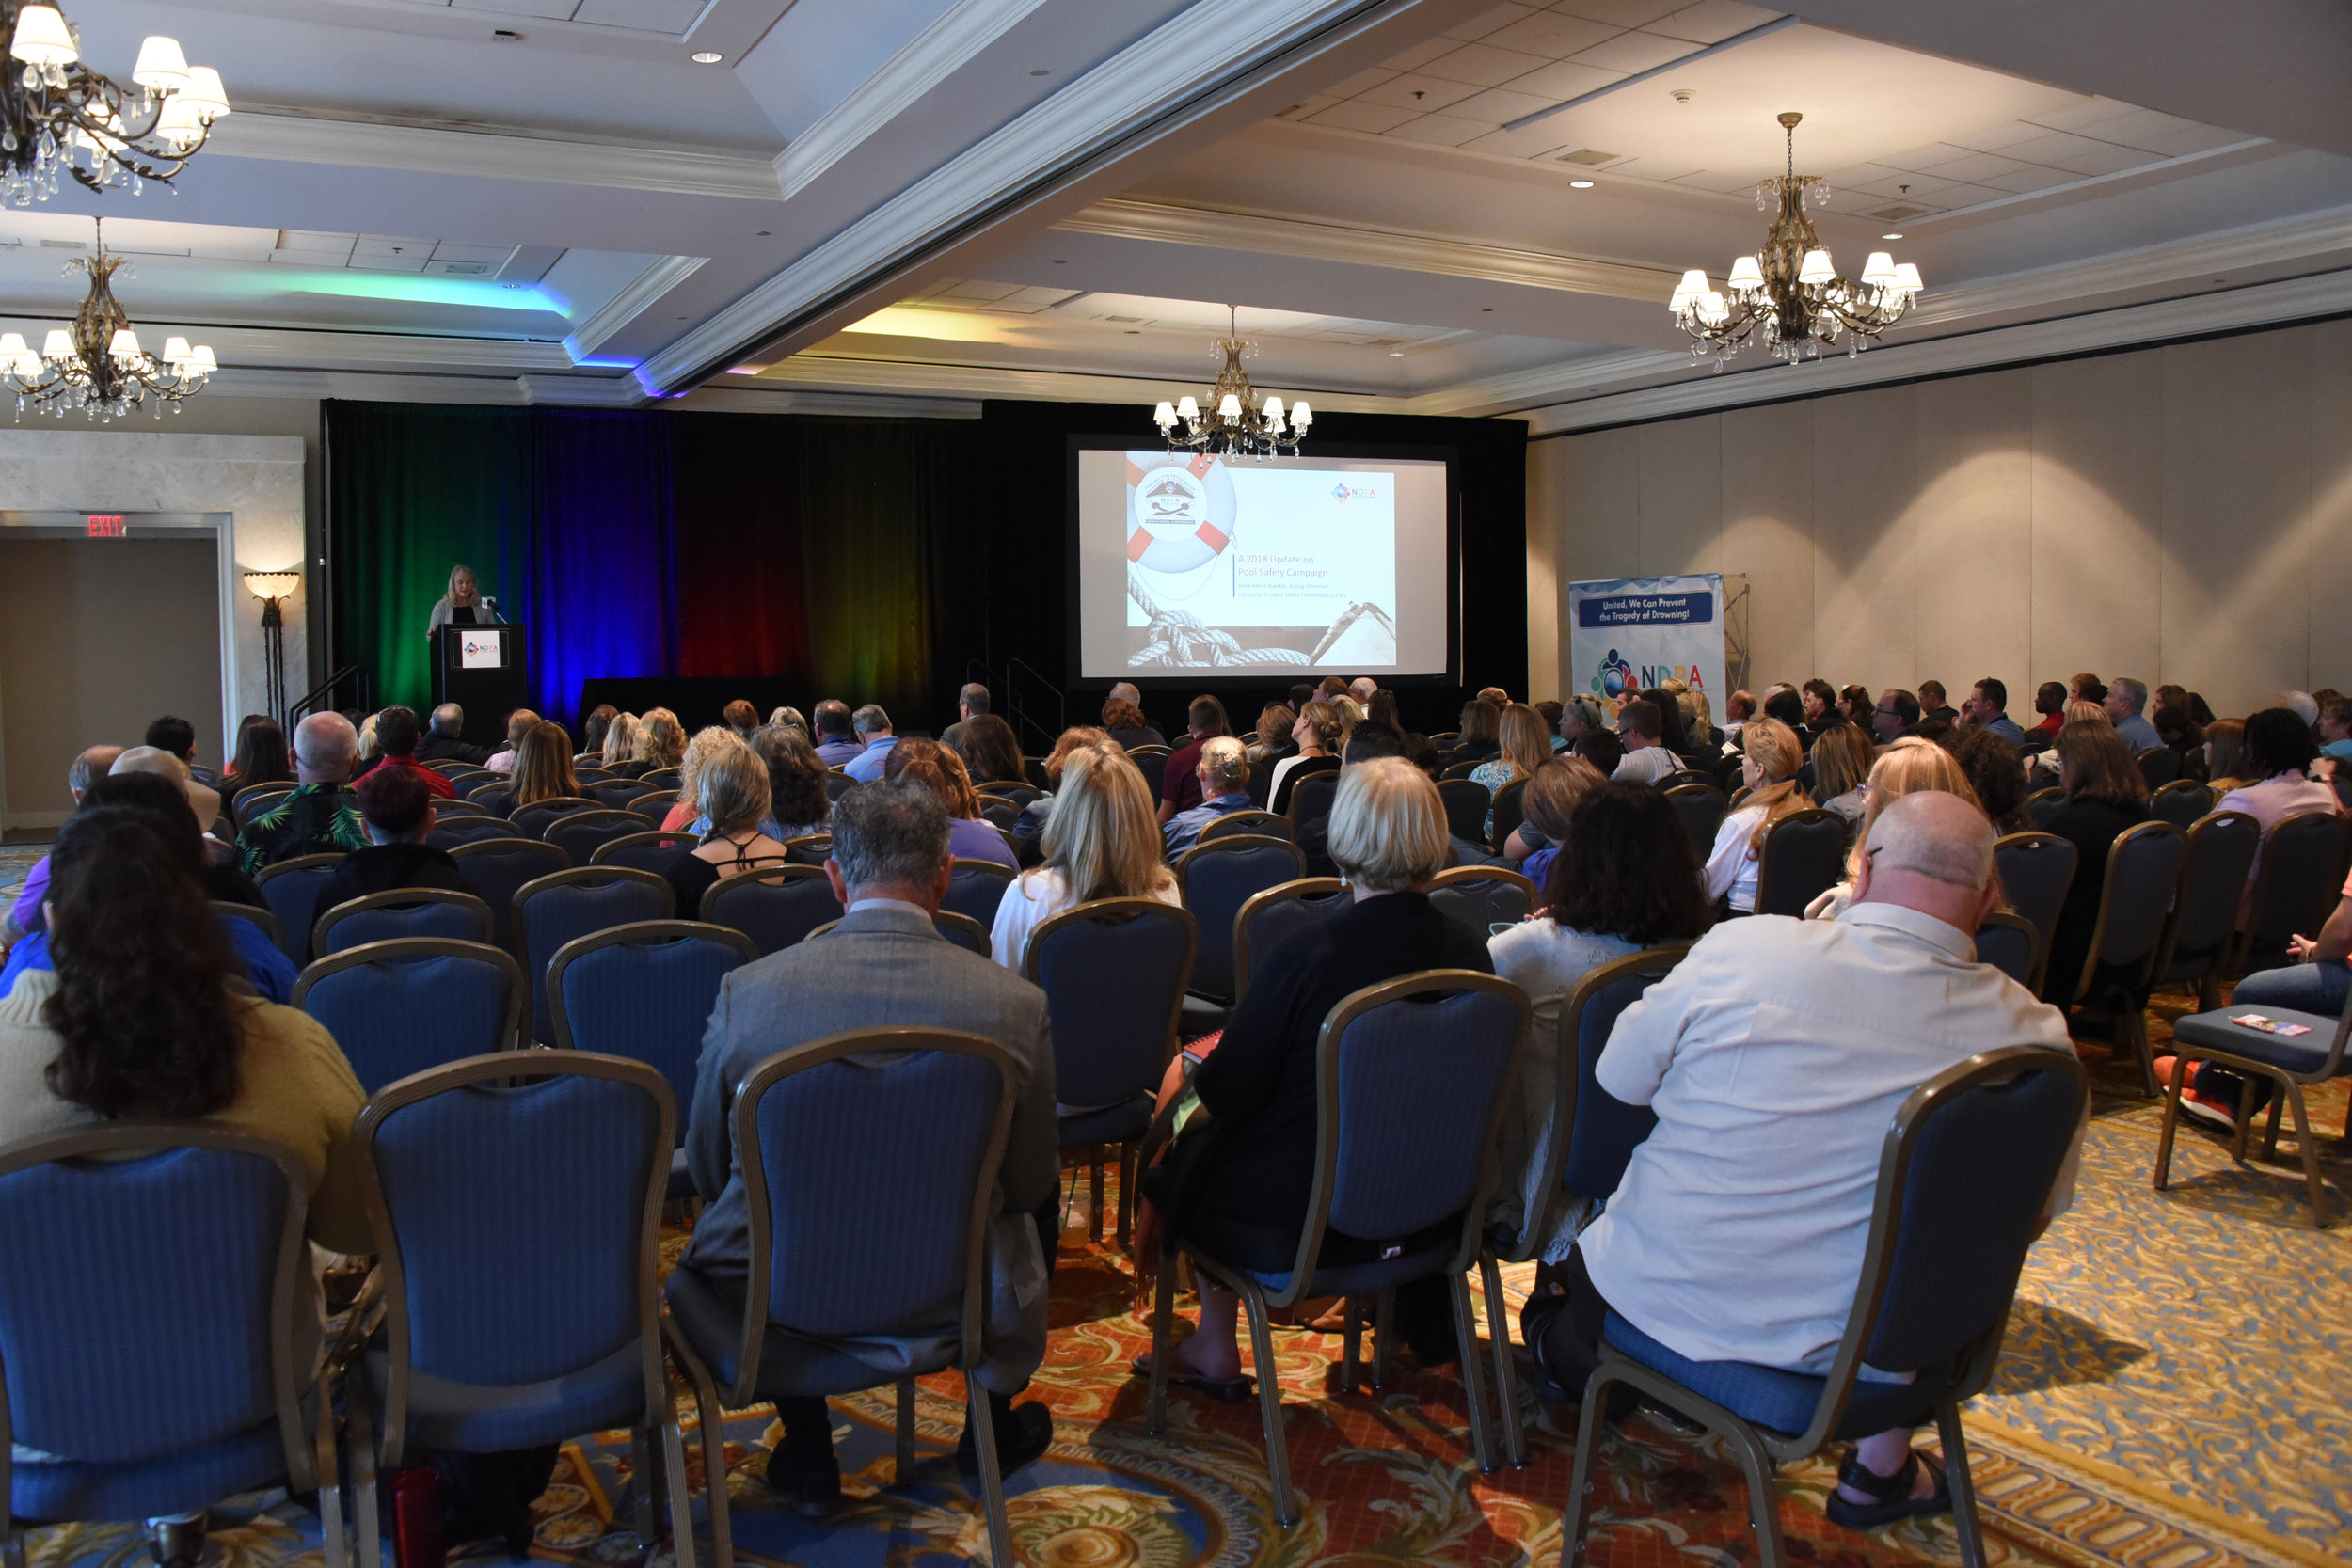 Share your knowledge, research, and programs with others! - Over 100 presenter requests have been submitted for the 2020 National Water Safety Conference. We can't wait to share our amazing line up of speakers with you! Please check back here soon!